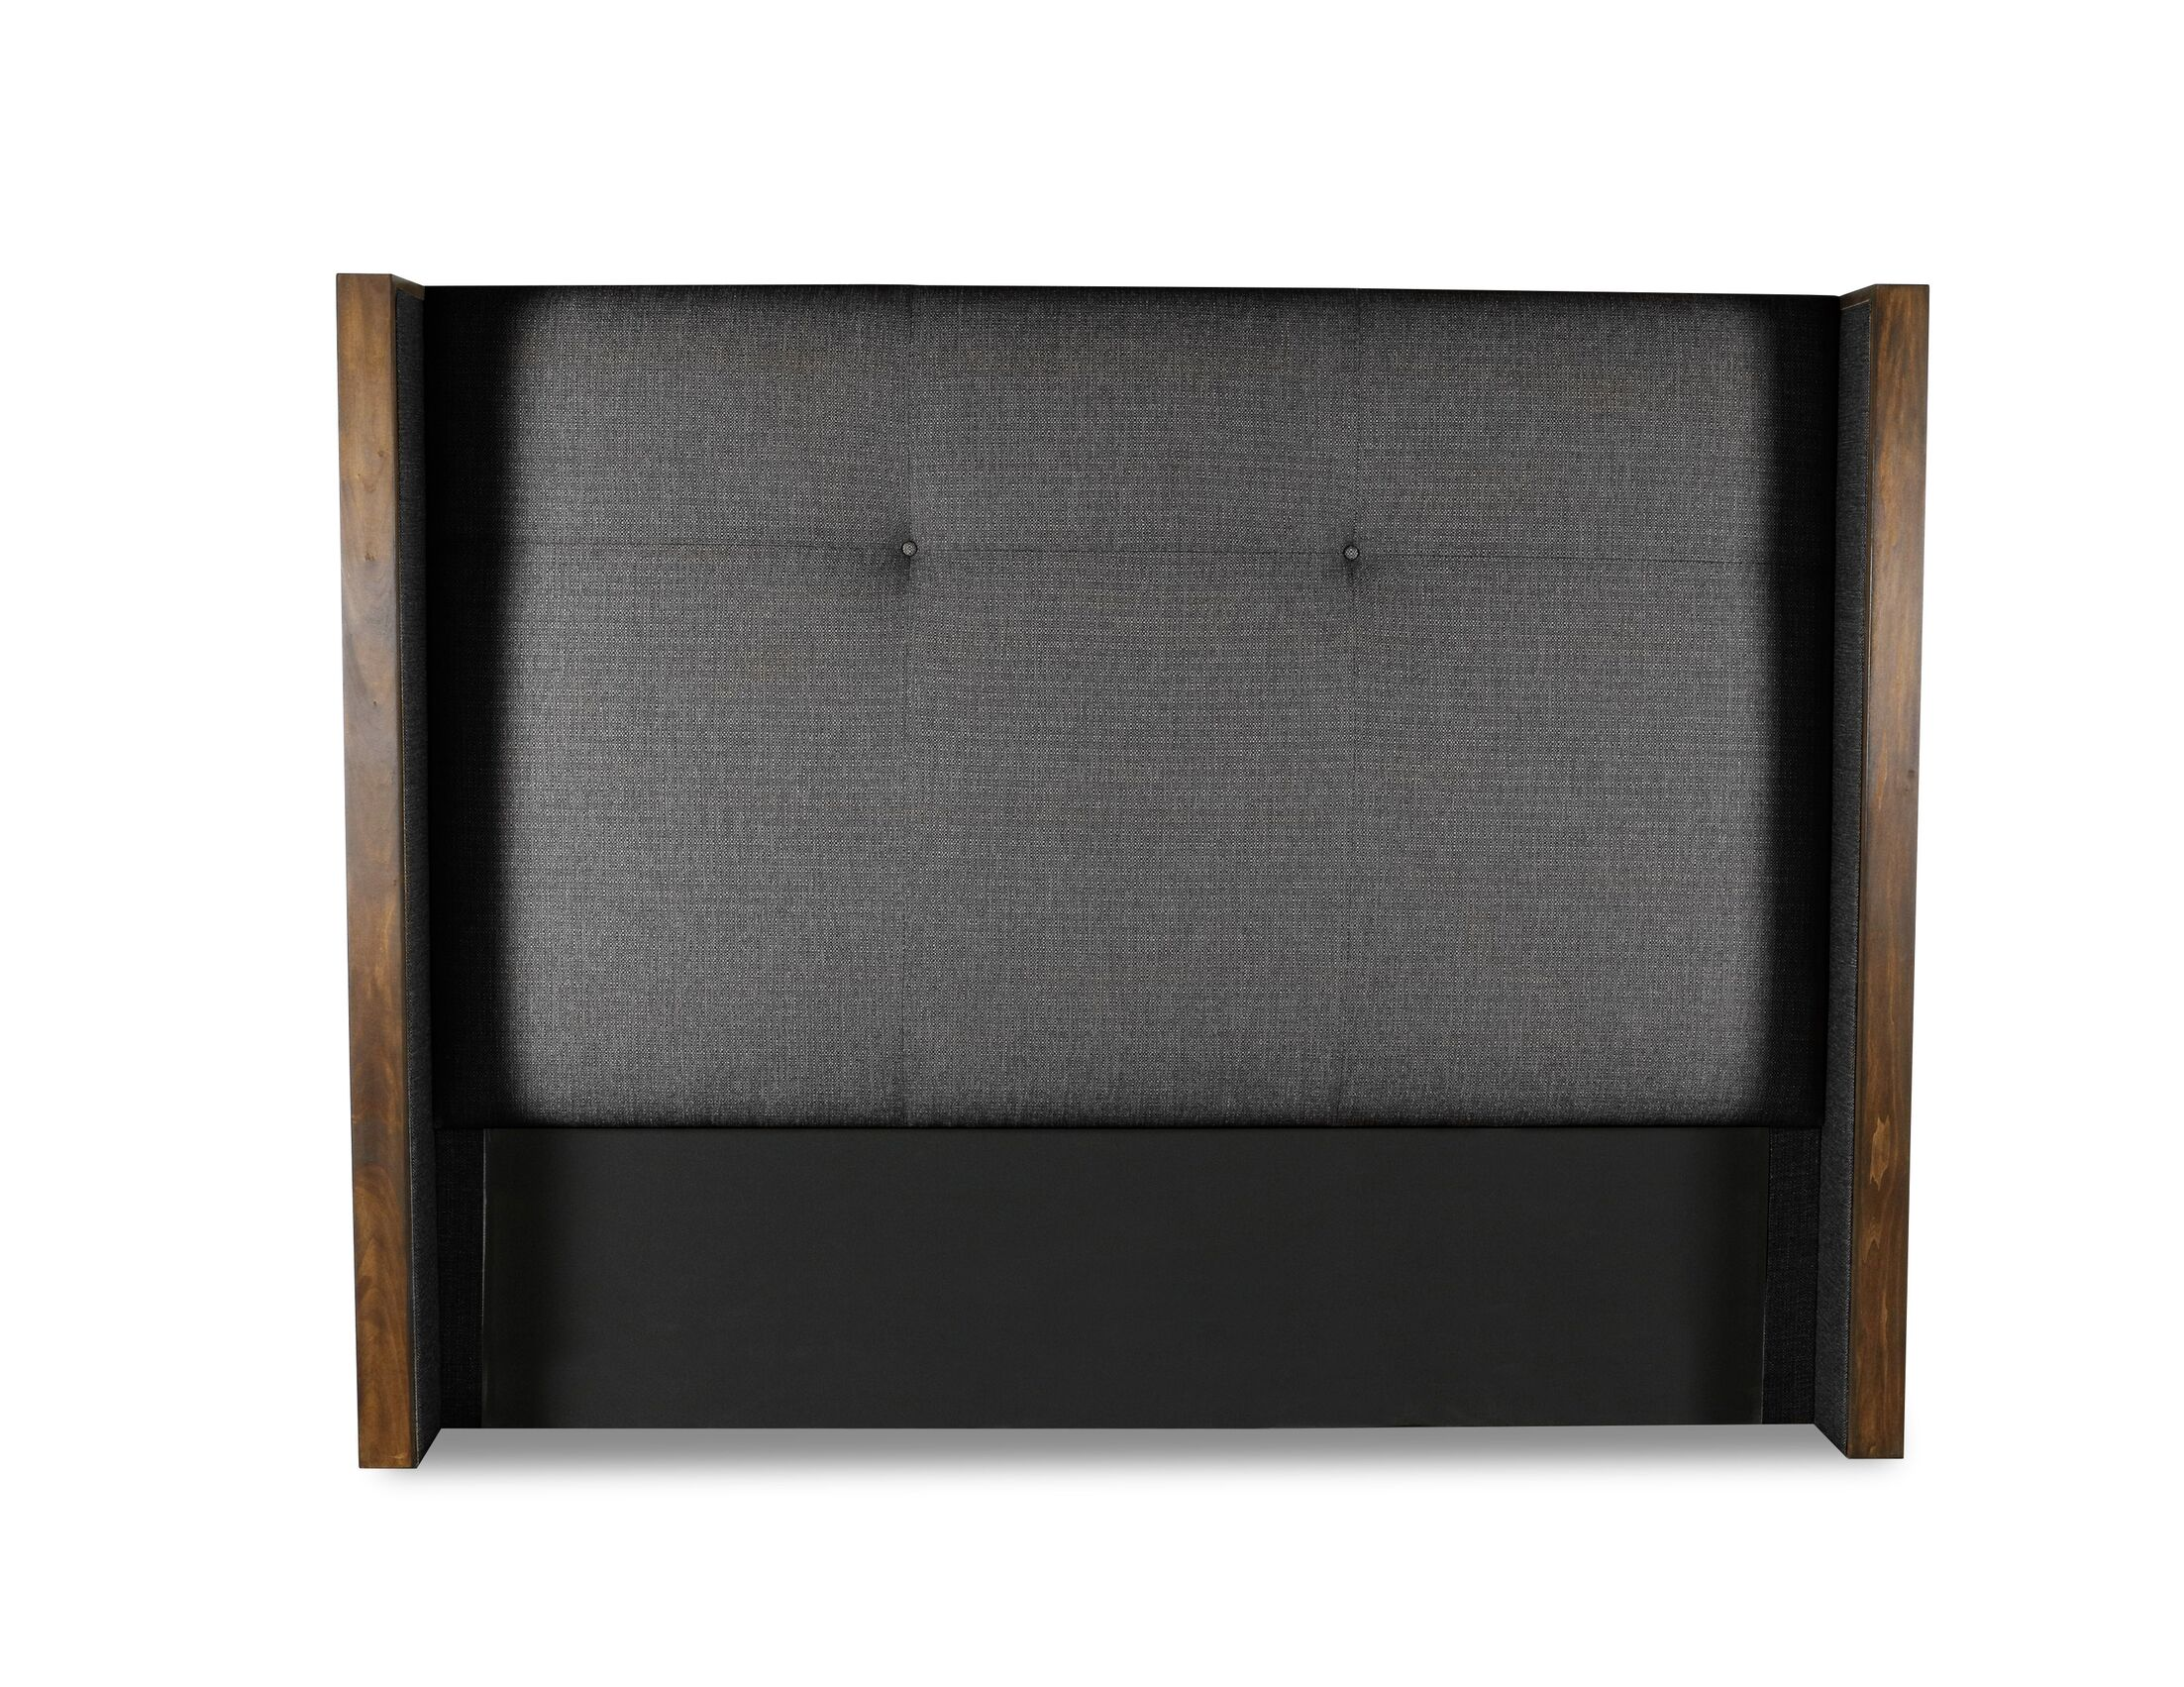 Hank Simple Tufted Upholstered Wingback Headboard Color: Charcoal, Size: Mid Height California King